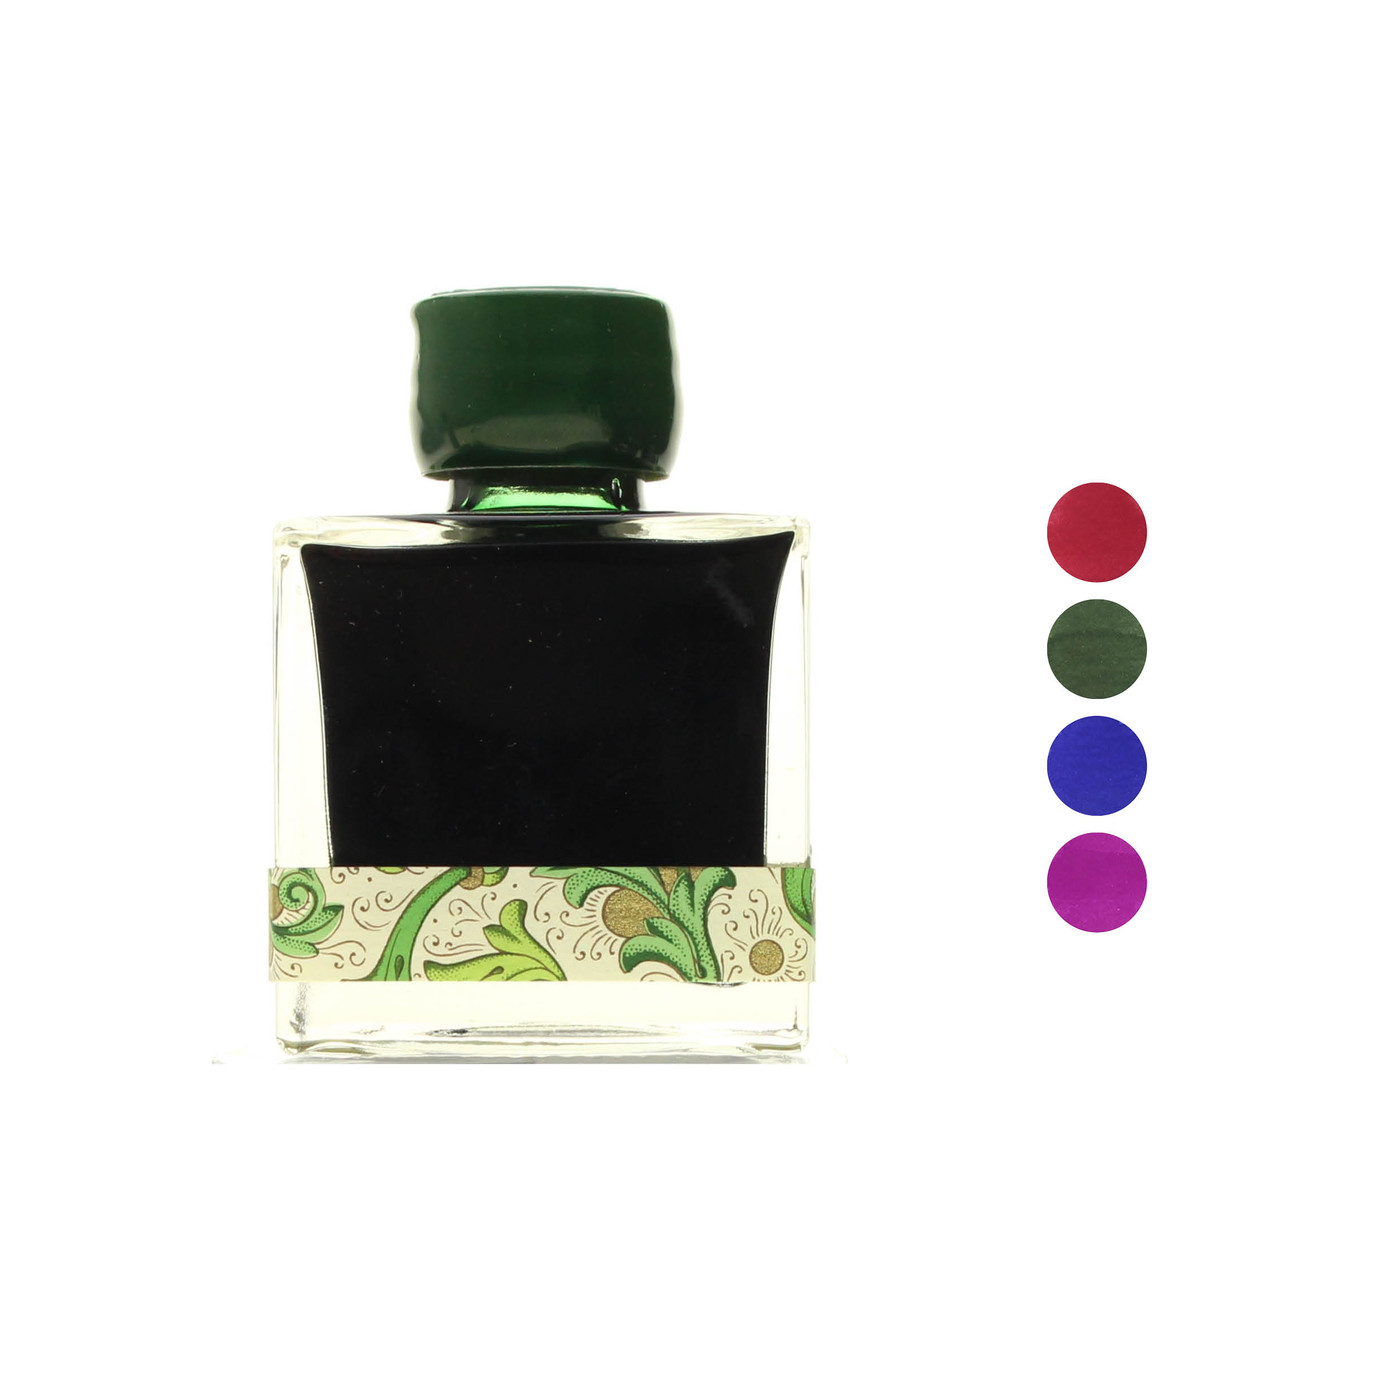 Herbin fountain pen ink - Monarch range